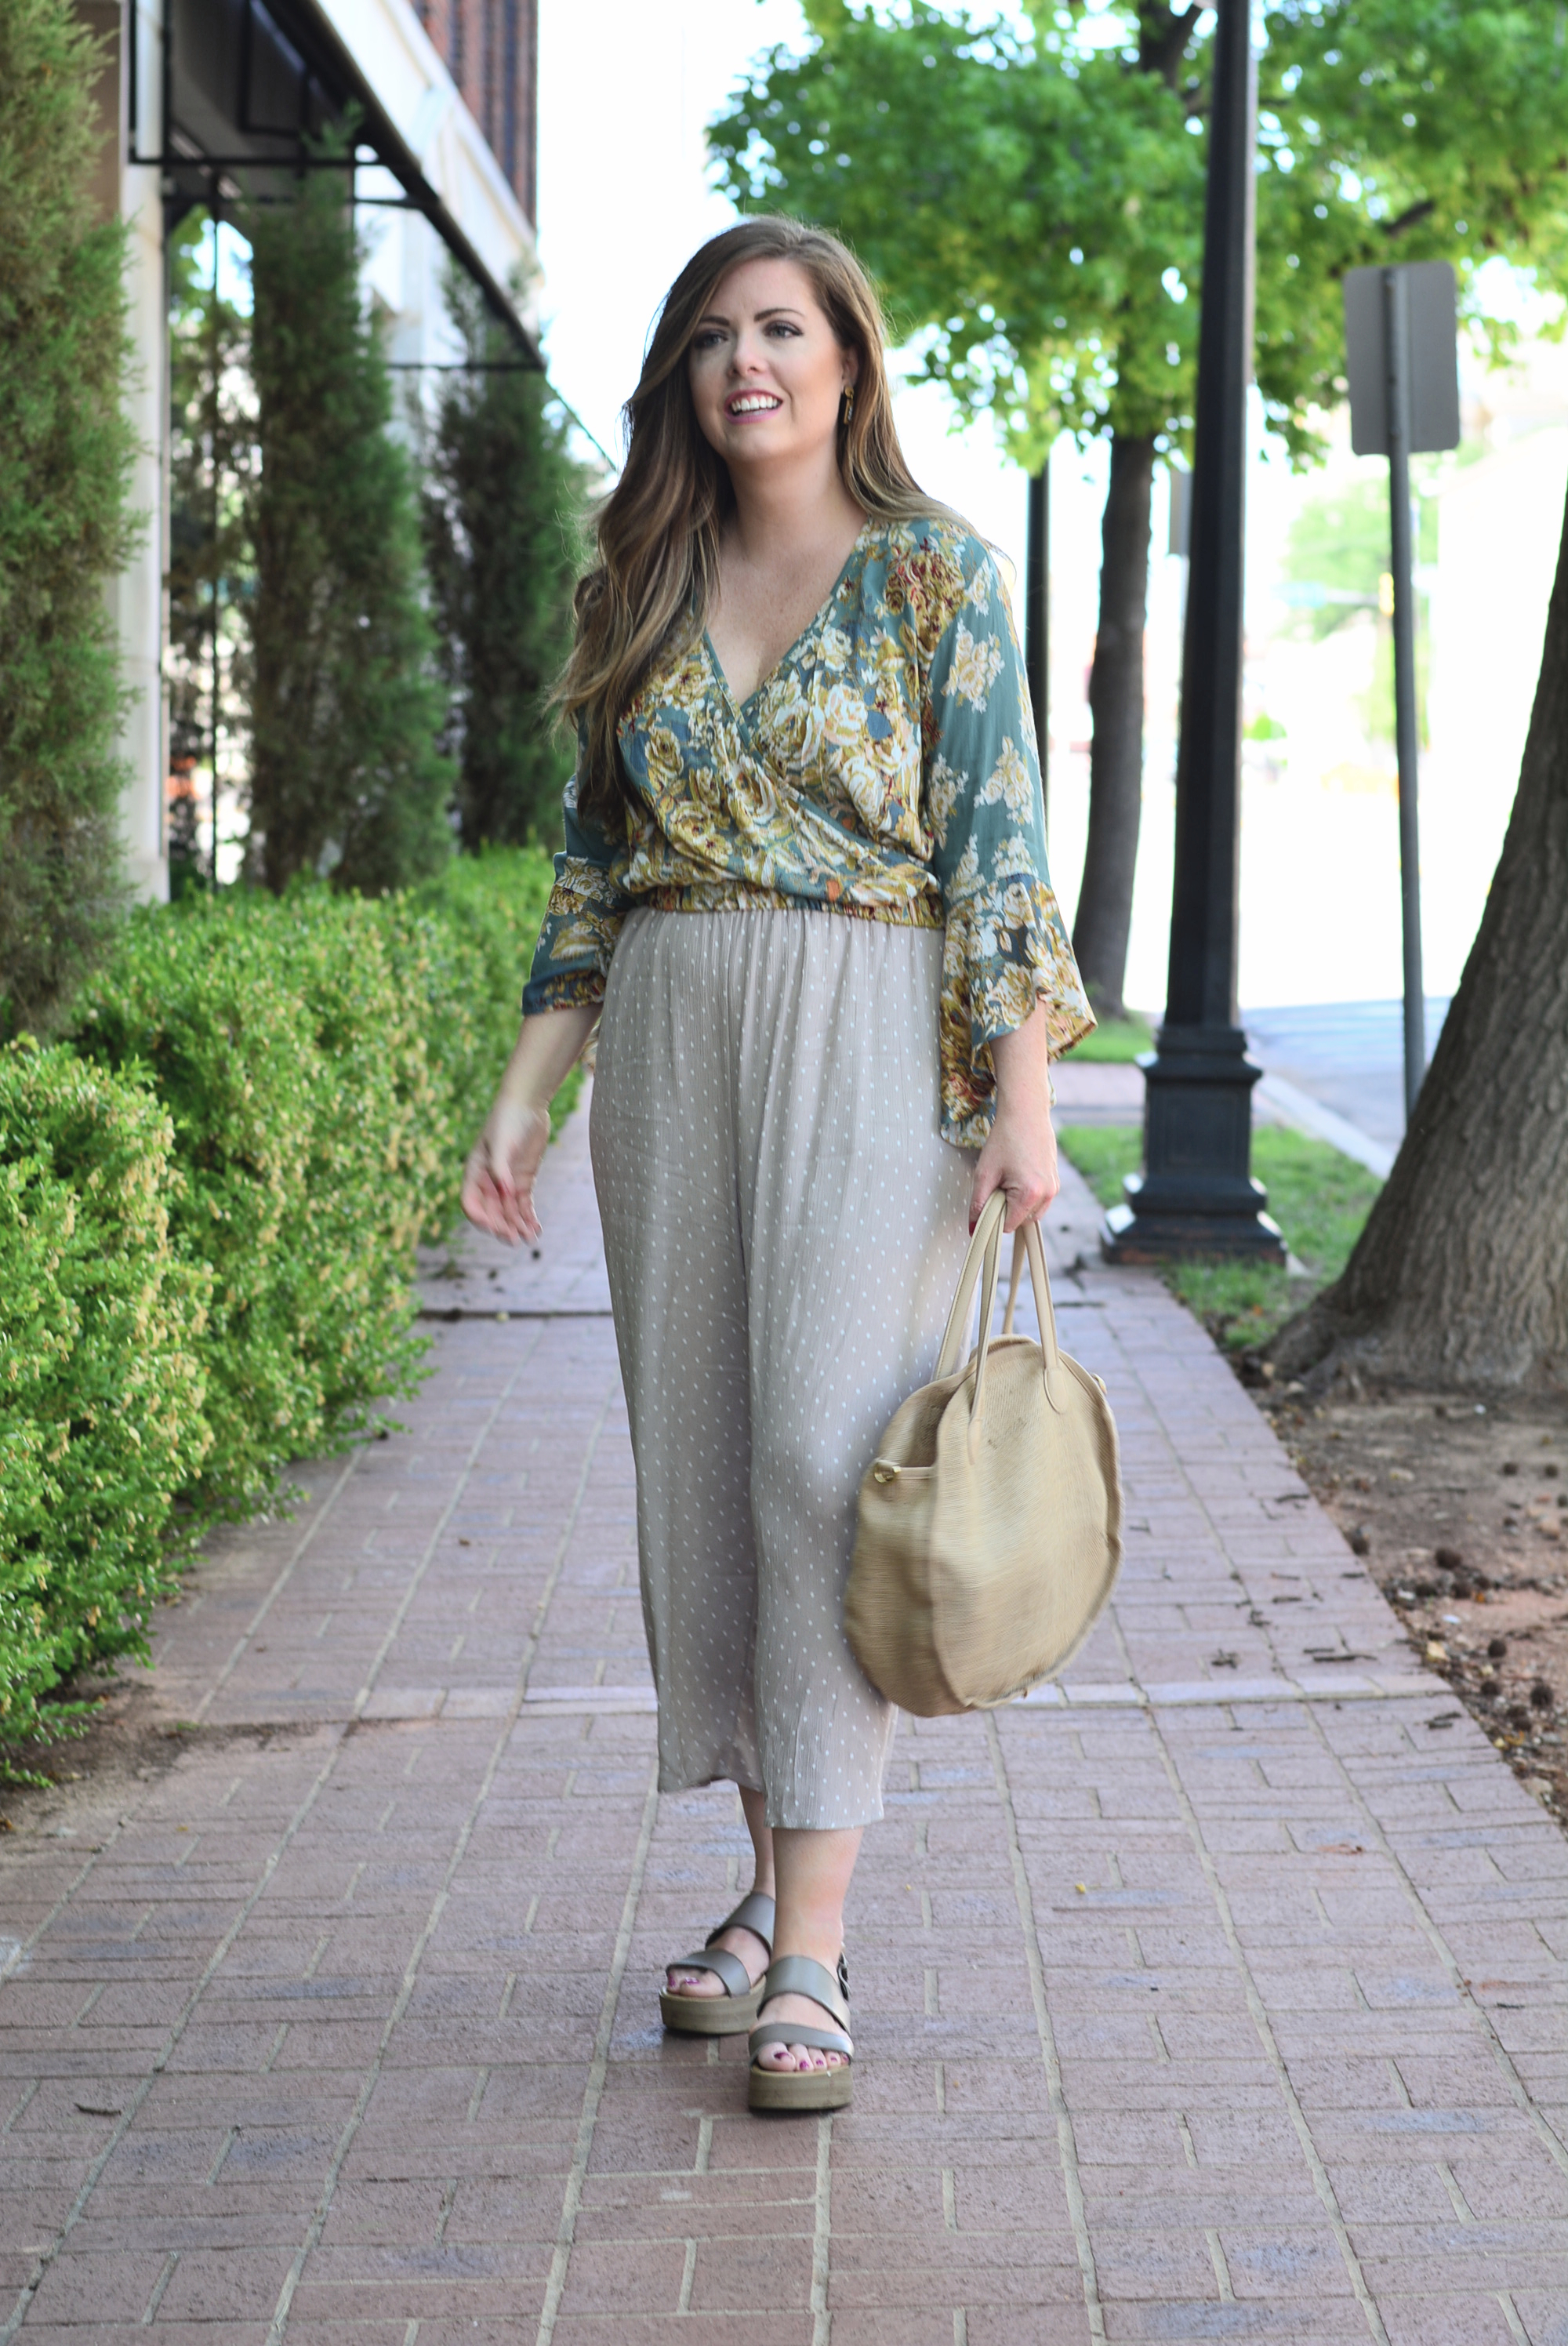 Floral Crop Top with Polka Dot Culottes for summer